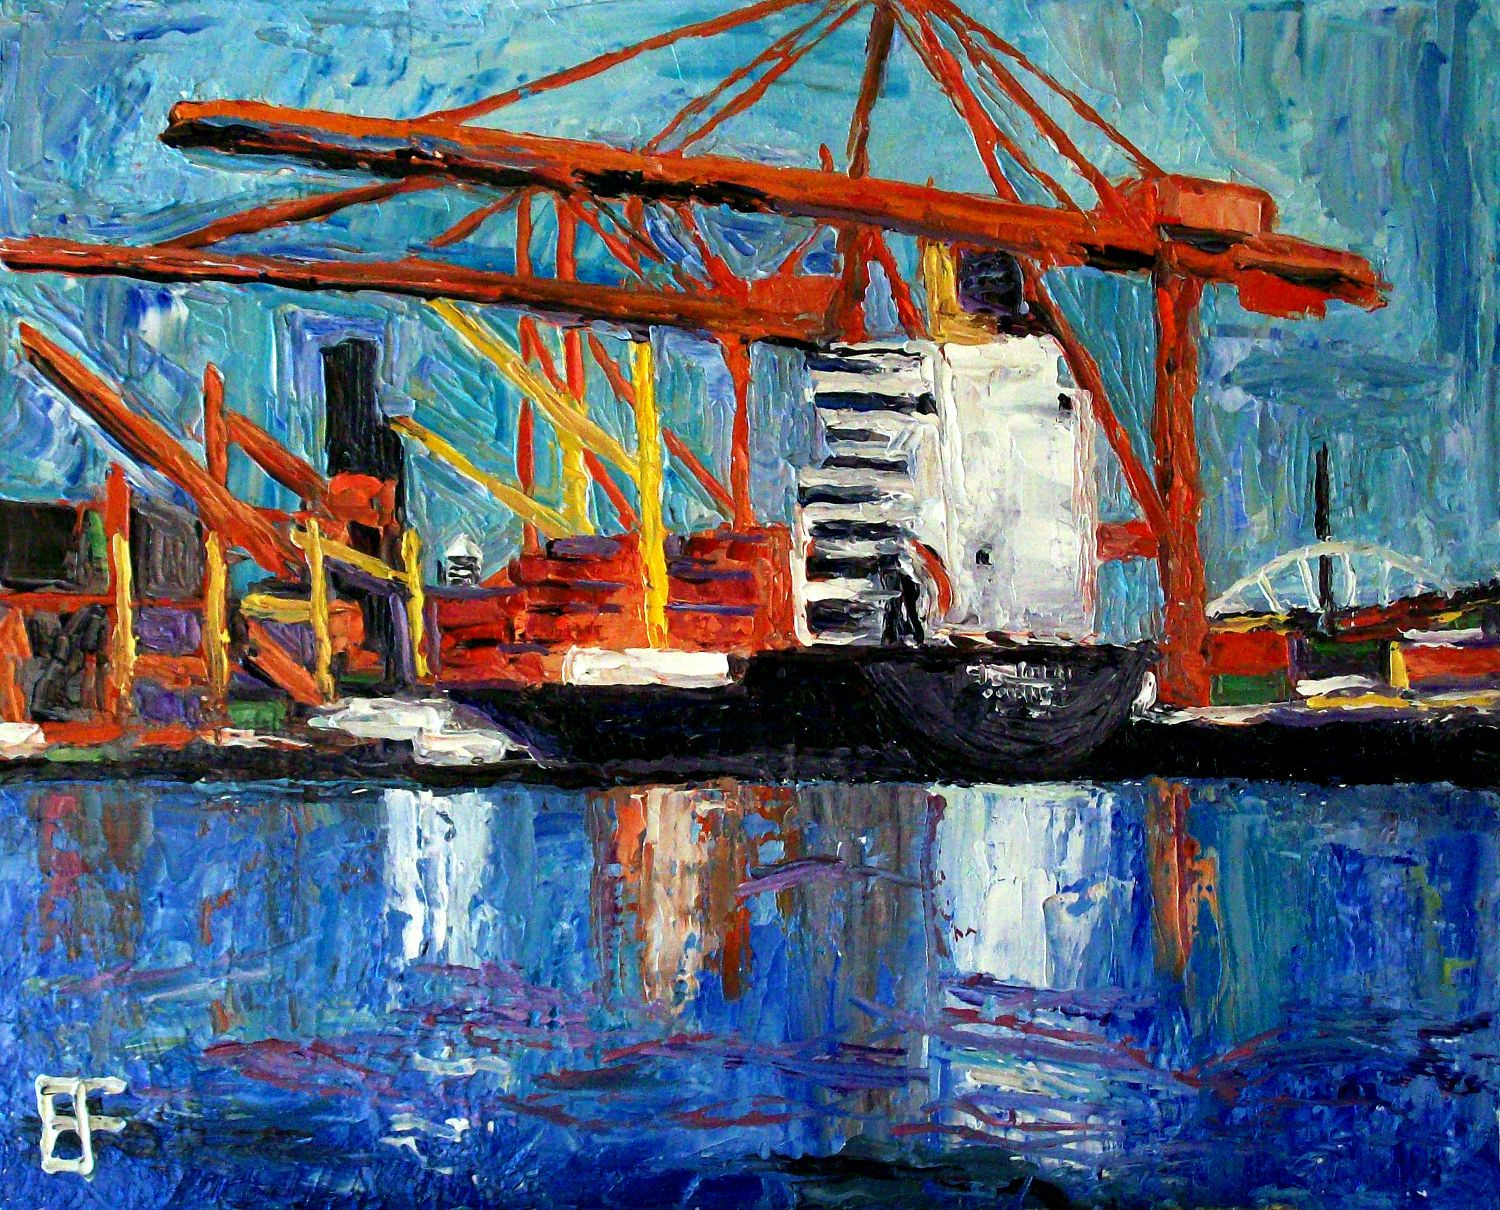 """In the words of Allen Forrest, """"painting is a cross between a crap shoot, finding your way out of the woods, and performing magic.""""  Find his work, including """"Port of Seattle #1,"""" at http://terrain.org/2014/arterrain/seattle-blues-paintings"""